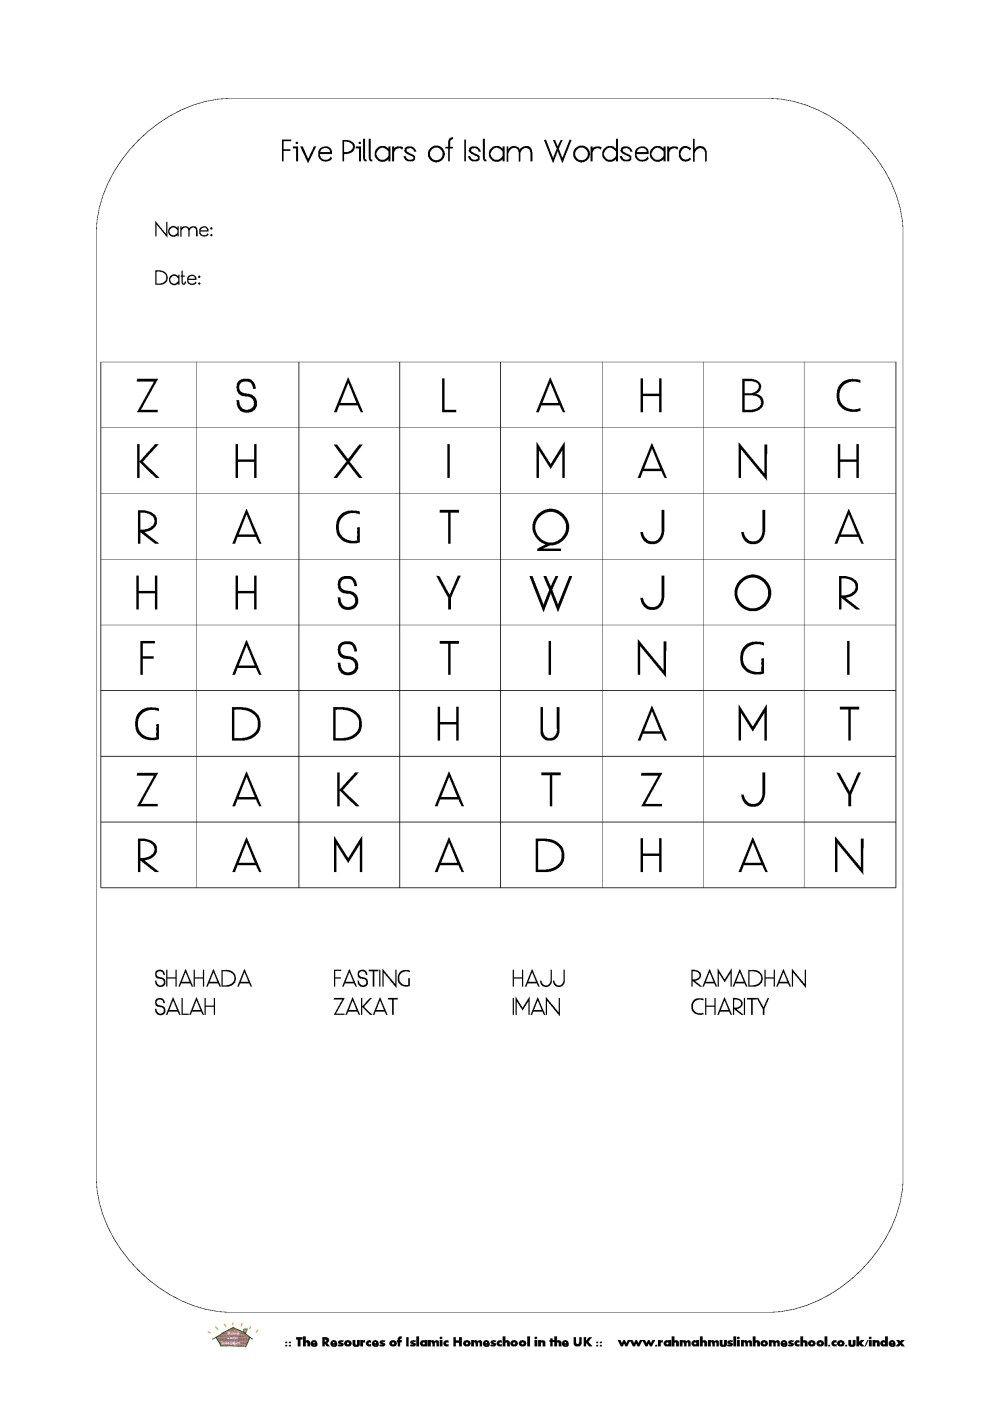 medium resolution of FREE Ramadhan Activities; The Five Pillars of Islam Wordsearch   The  Resources of Islamic Homeschool in the UK